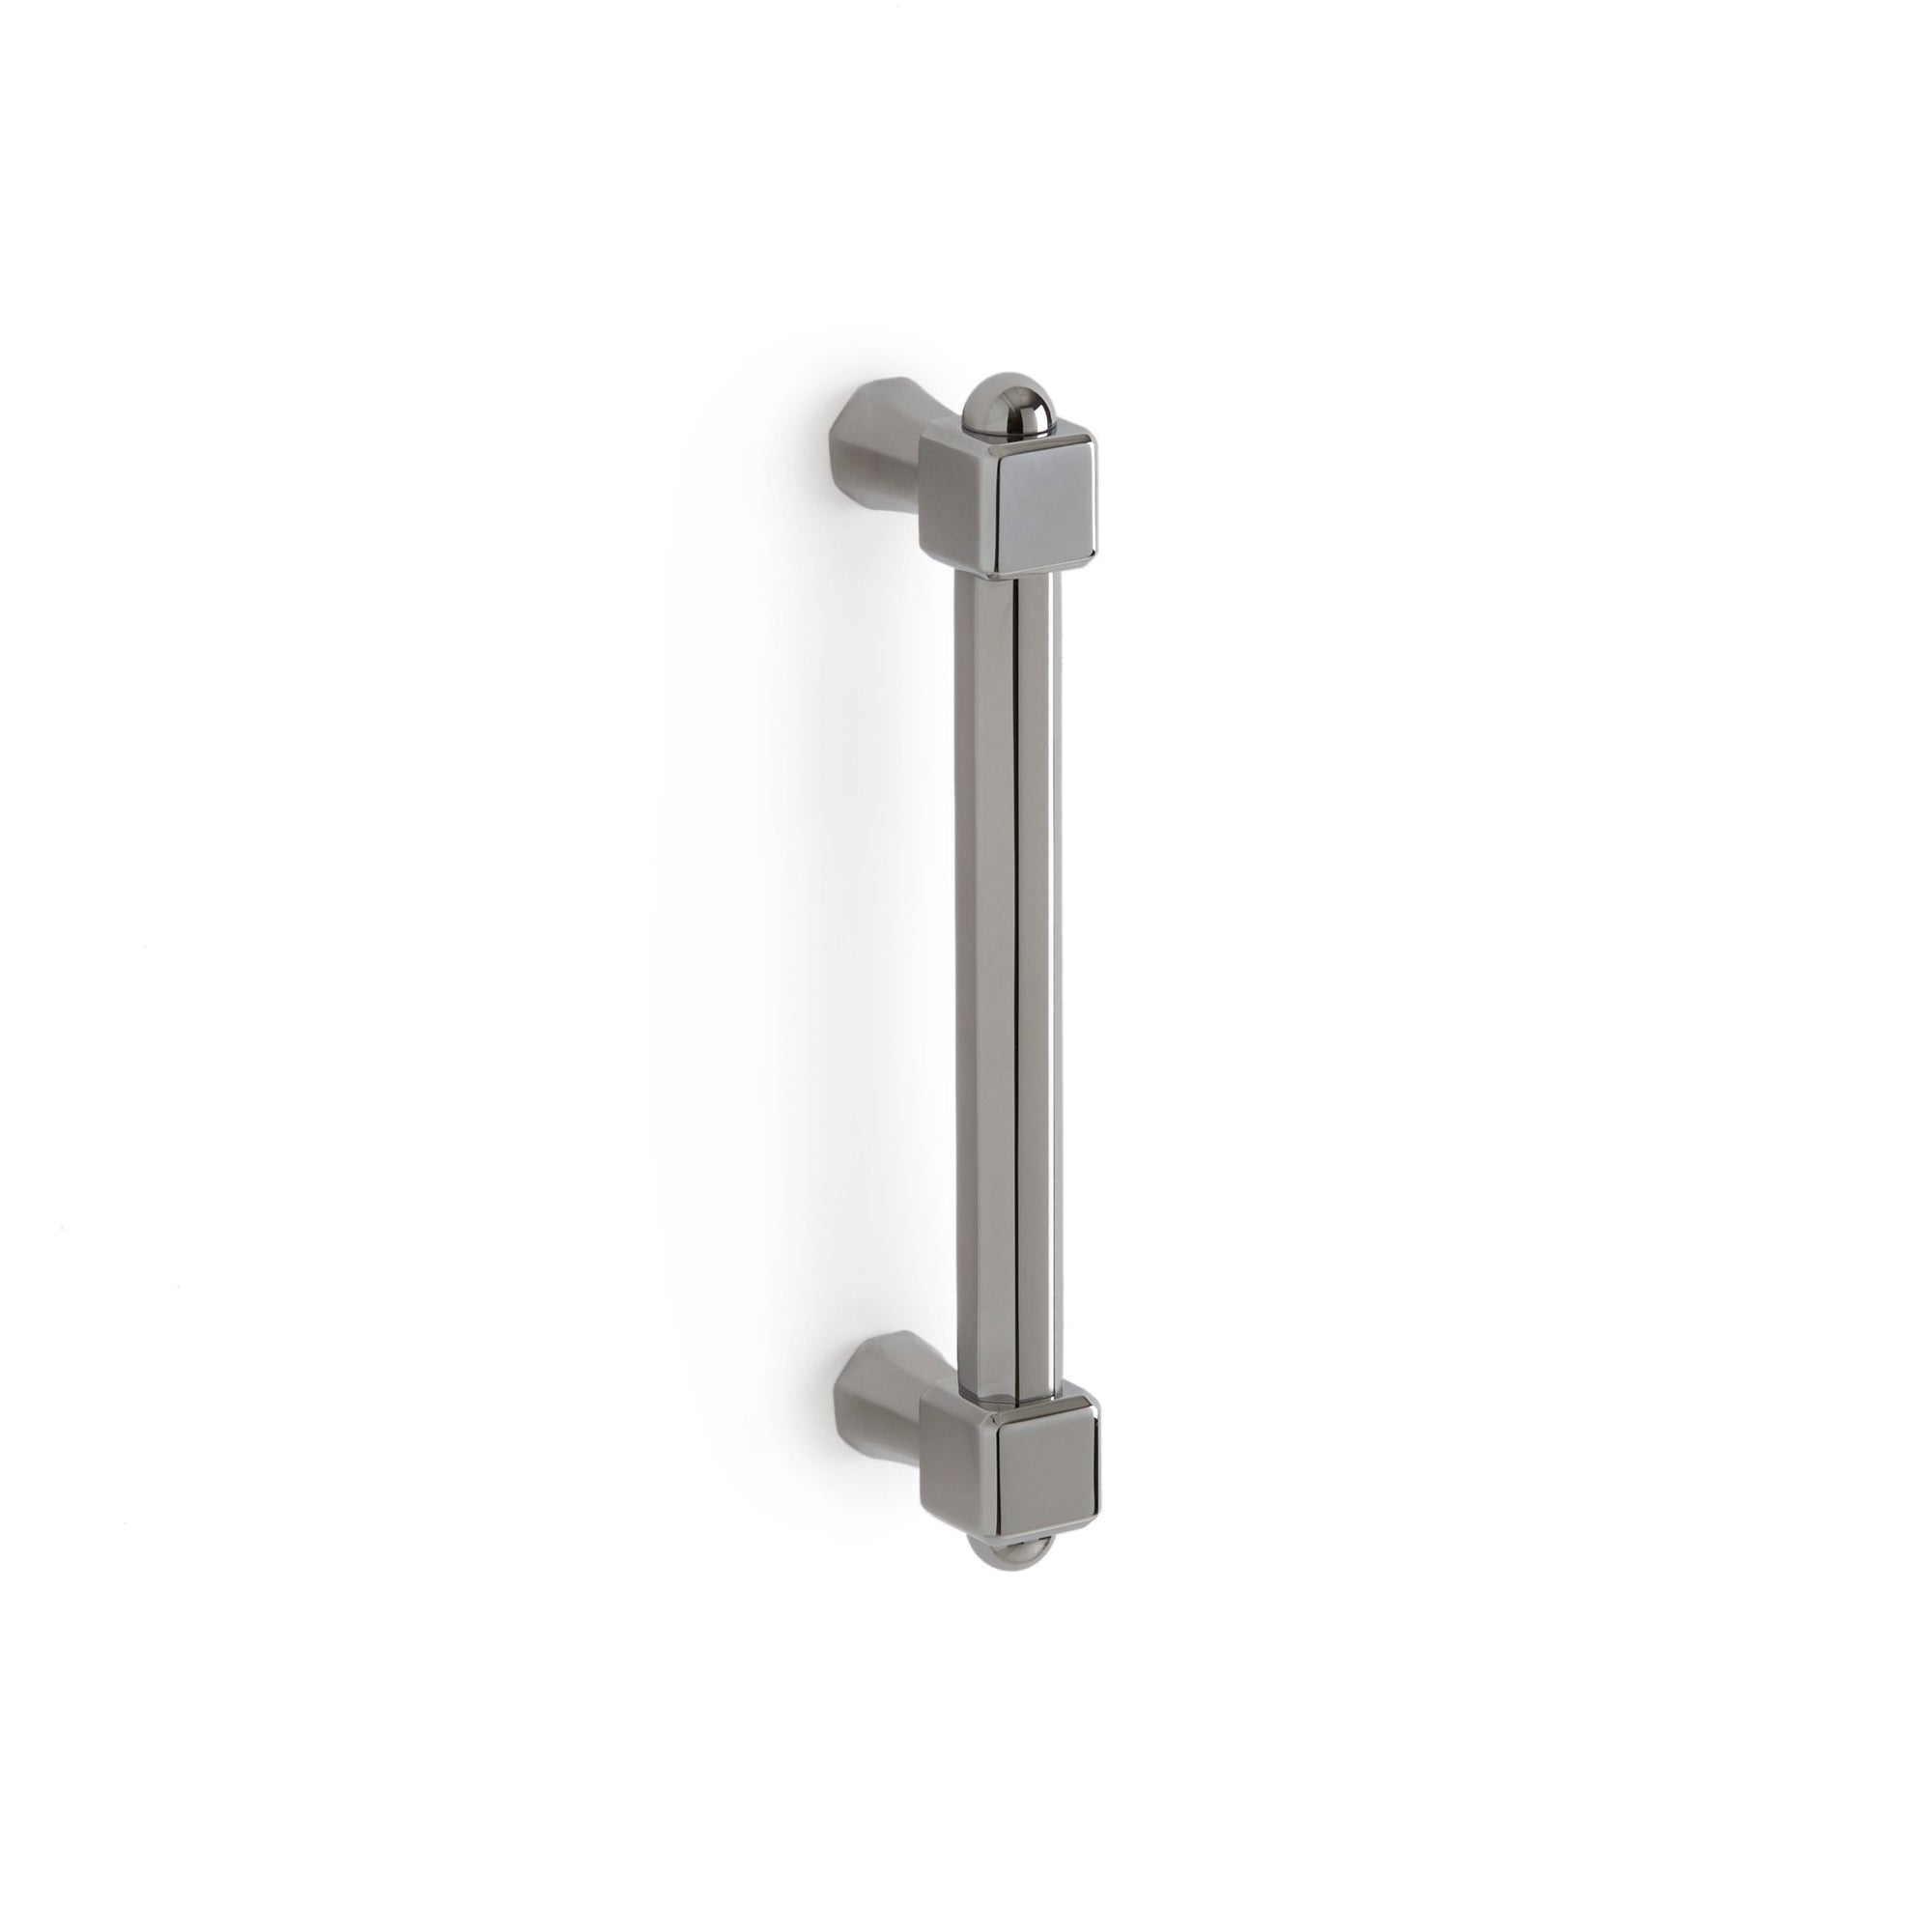 1019-7-1/4-CP Sherle Wagner International Harrison Bar Pull Large in Polished Chrome metal finish